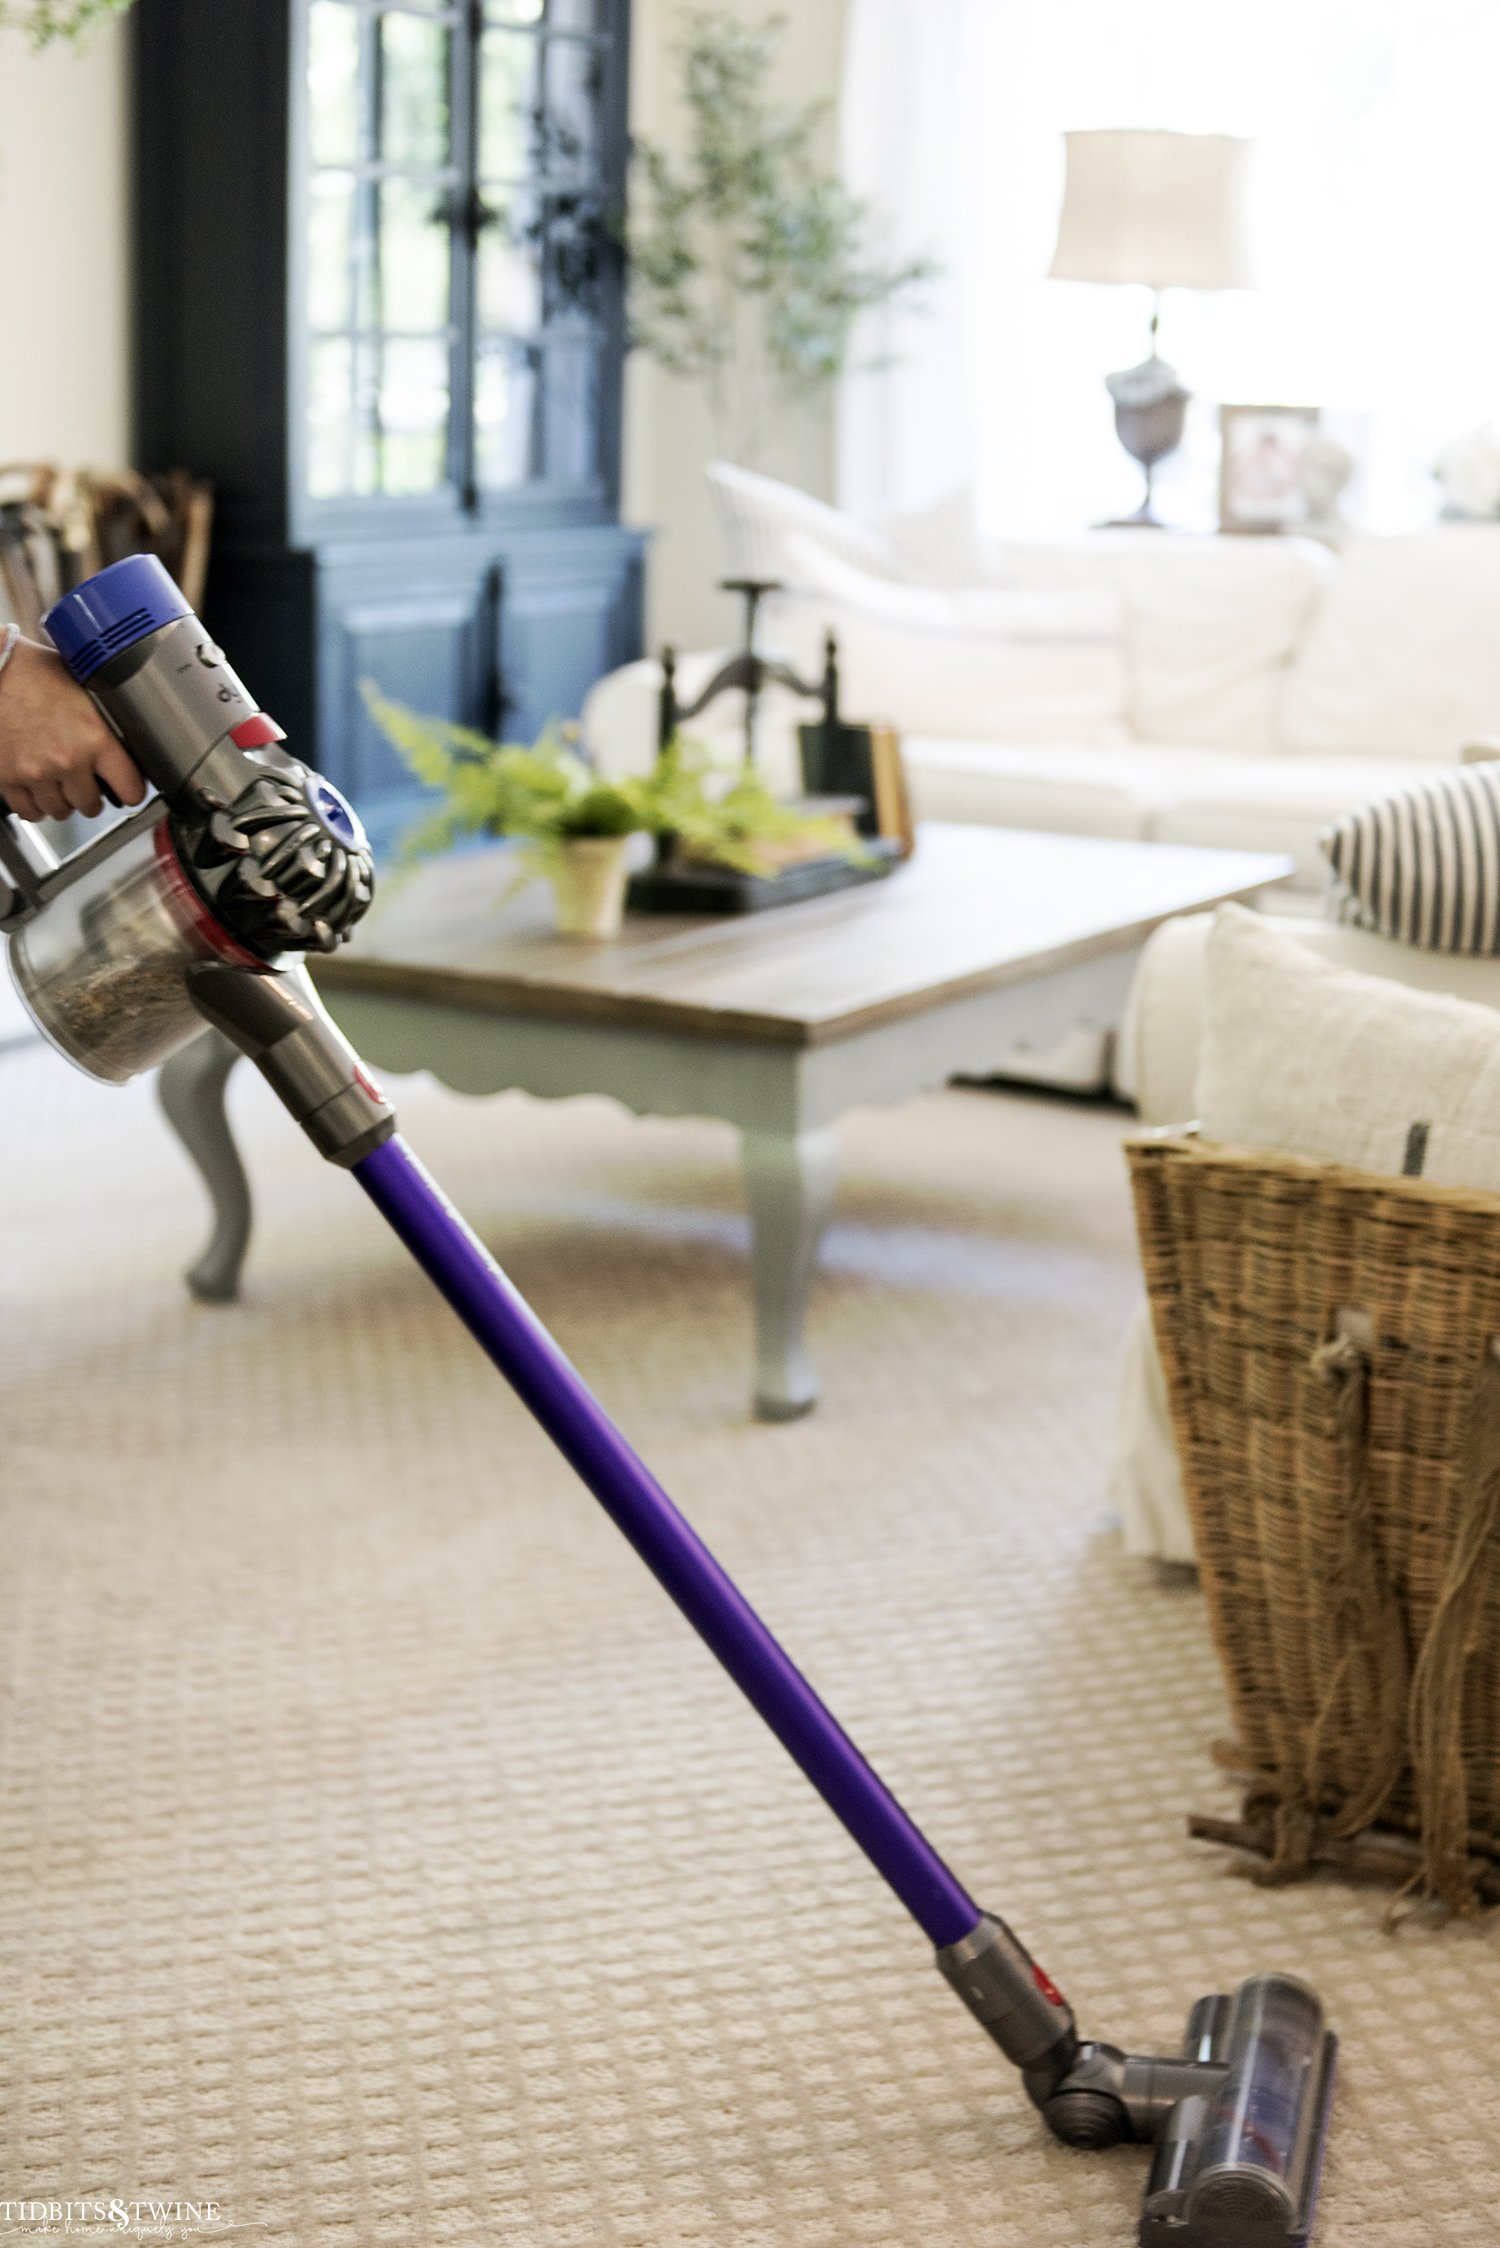 dyson cordless vacuum in french family room on diamond beige carpet with sectional in the background